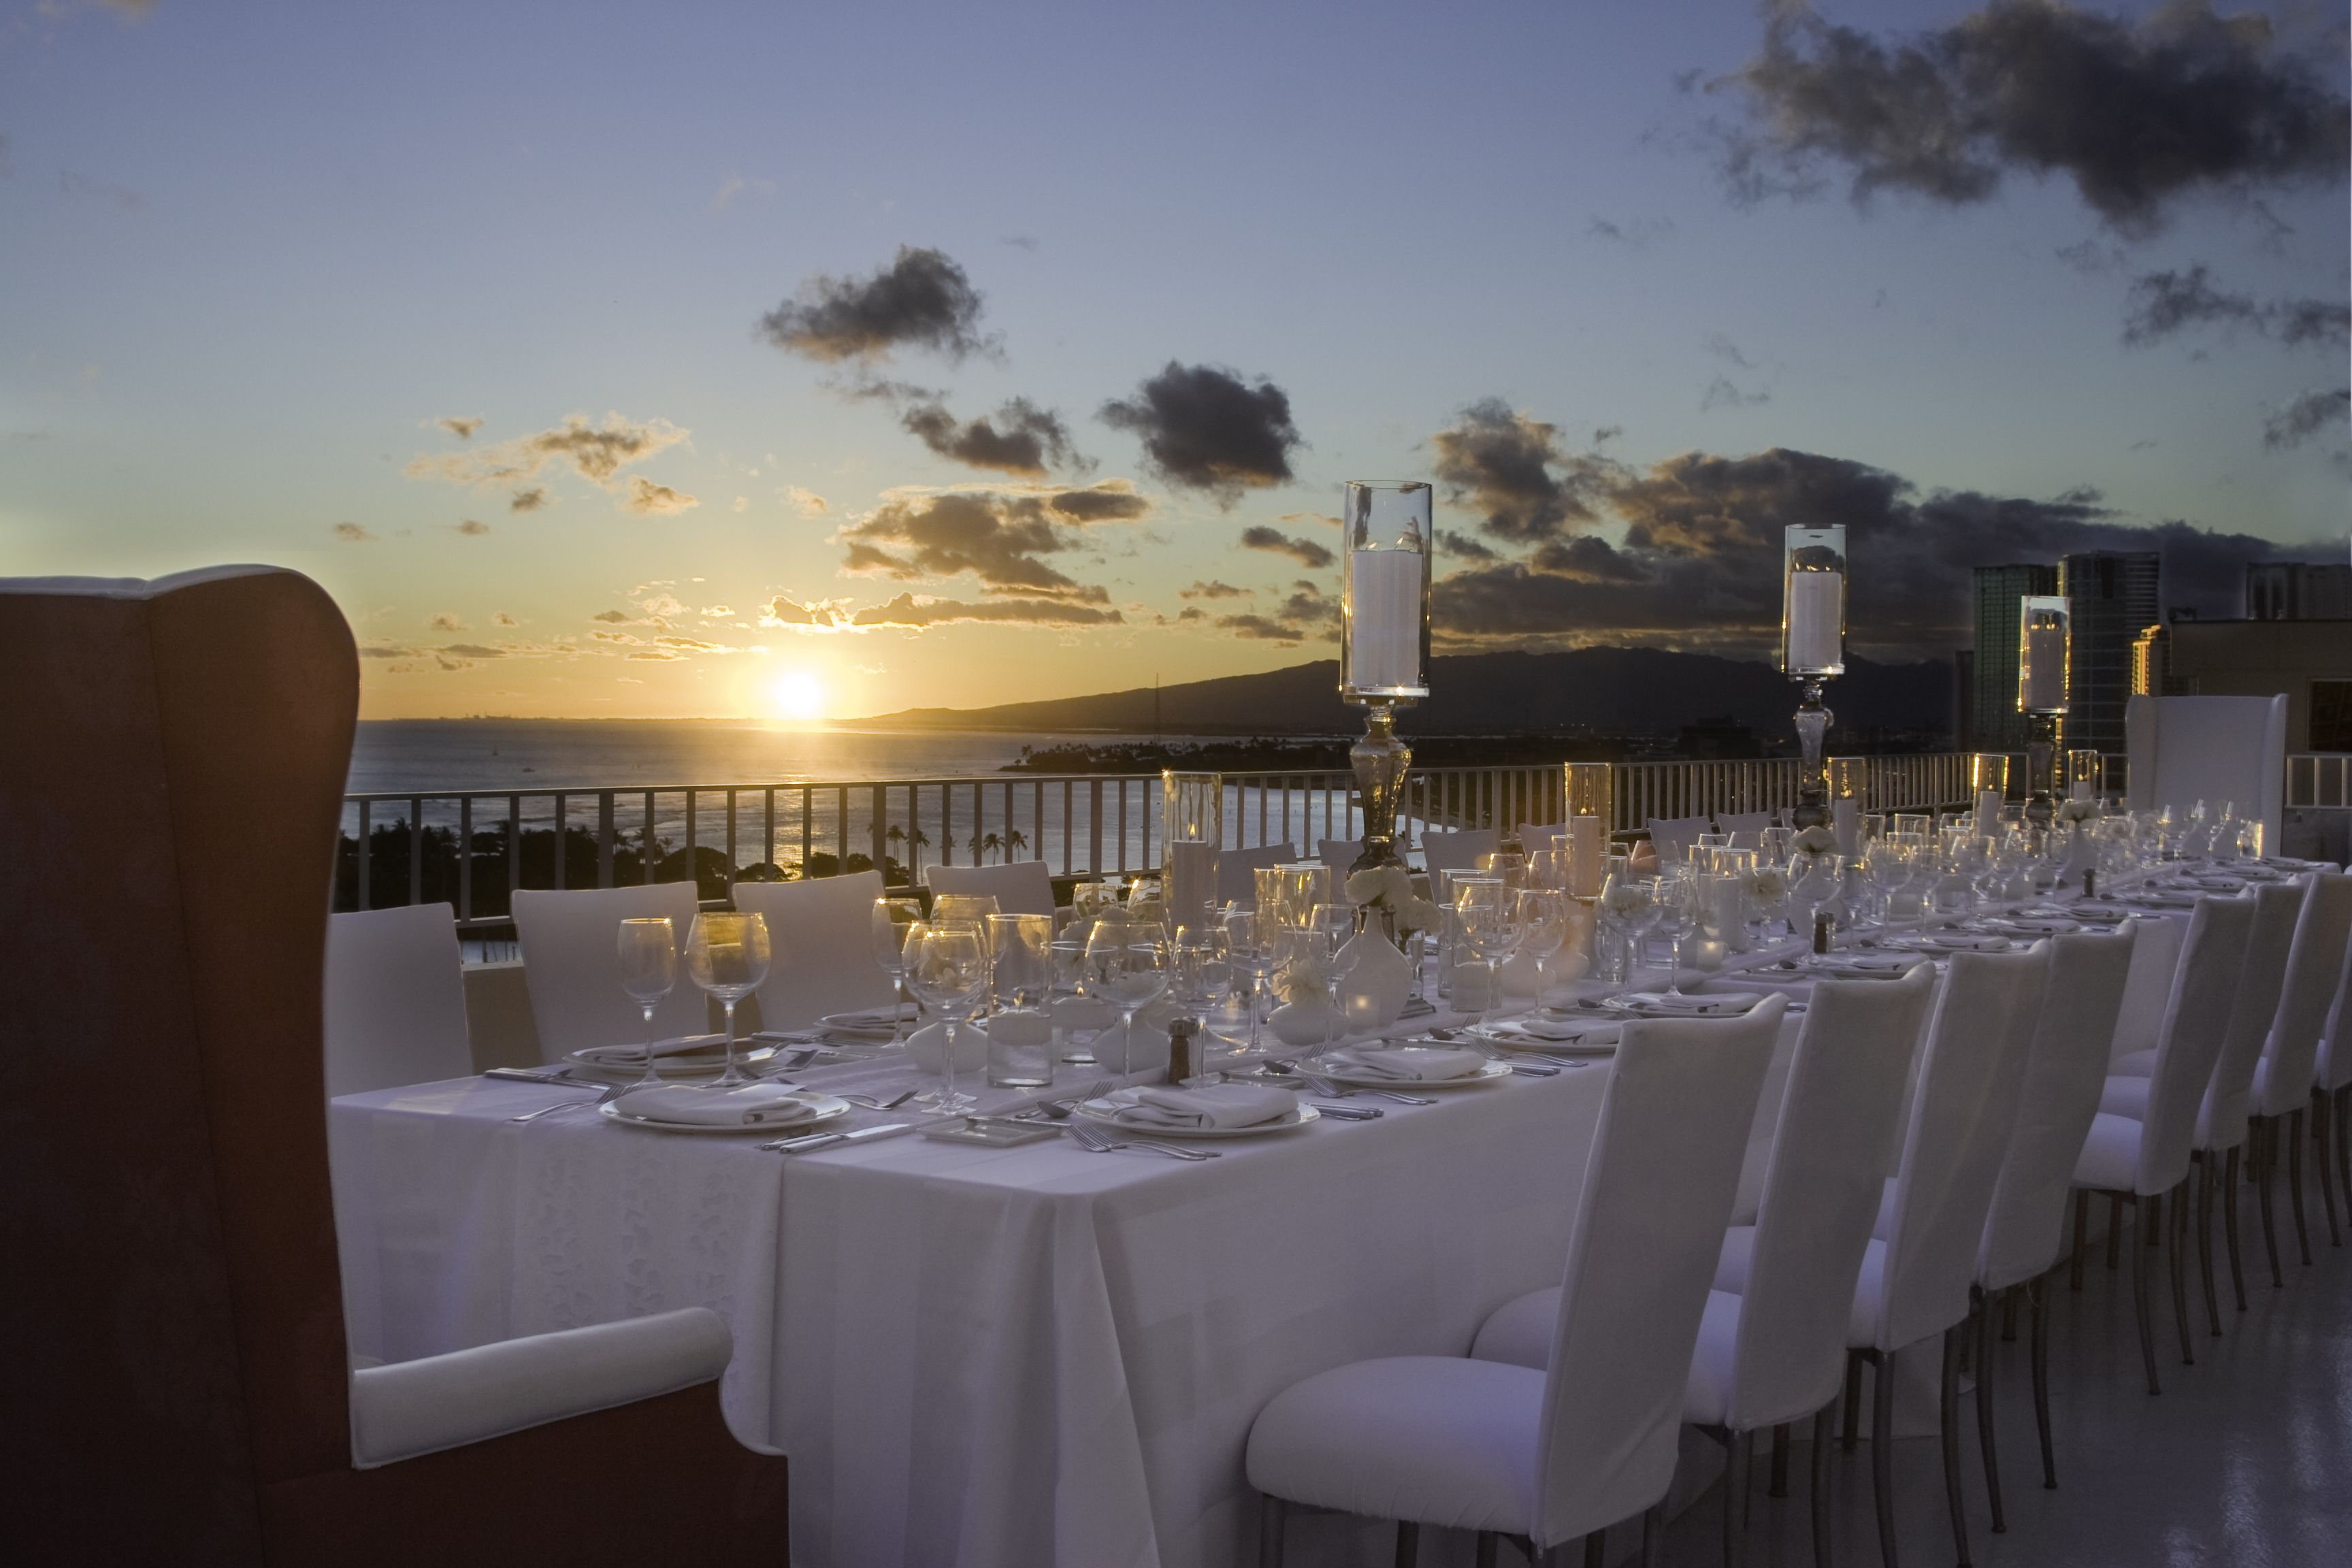 Luxurious Penthouse Wedding Reception at THE MODERN